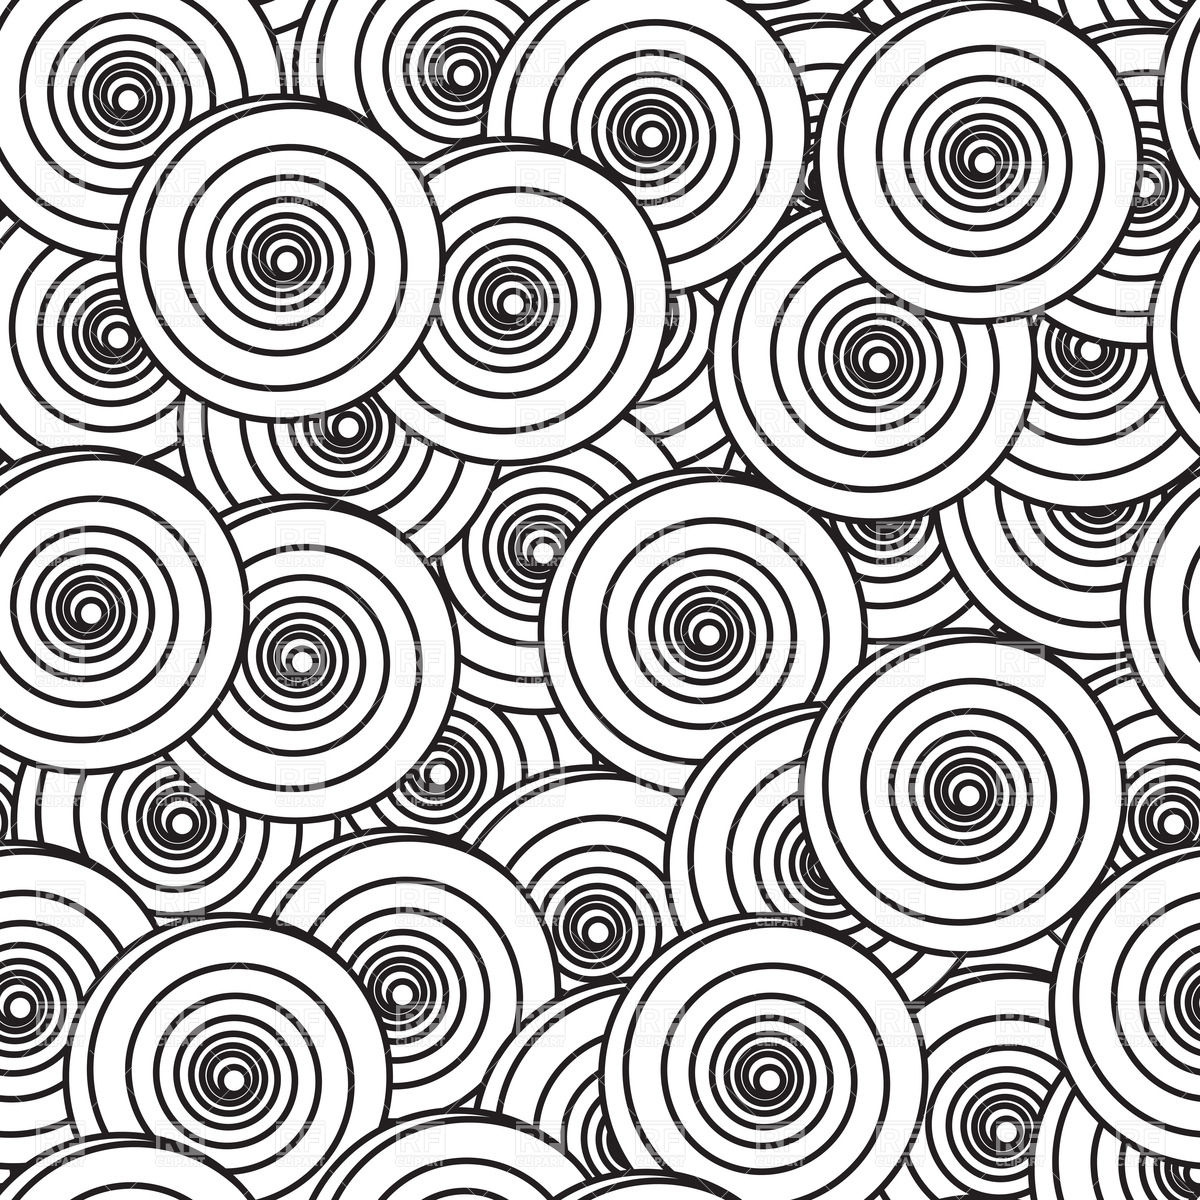 1200x1200 Black And White Background With Spiral Circles Vector Image